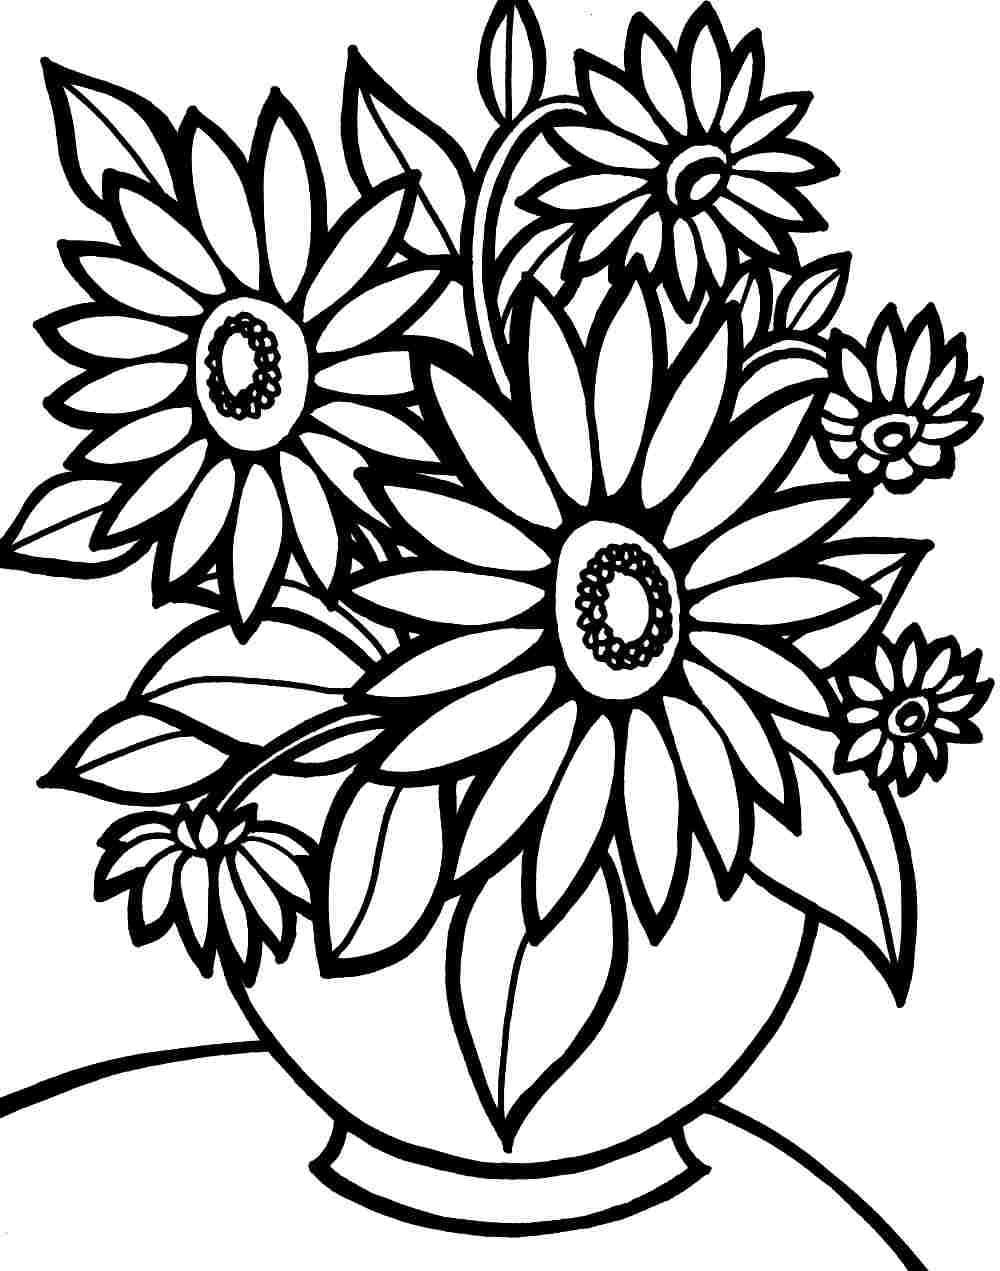 Flower Coloring Pages To Print Printable Flower Coloring Pages Easy Coloring Pages Kids Printable Coloring Pages